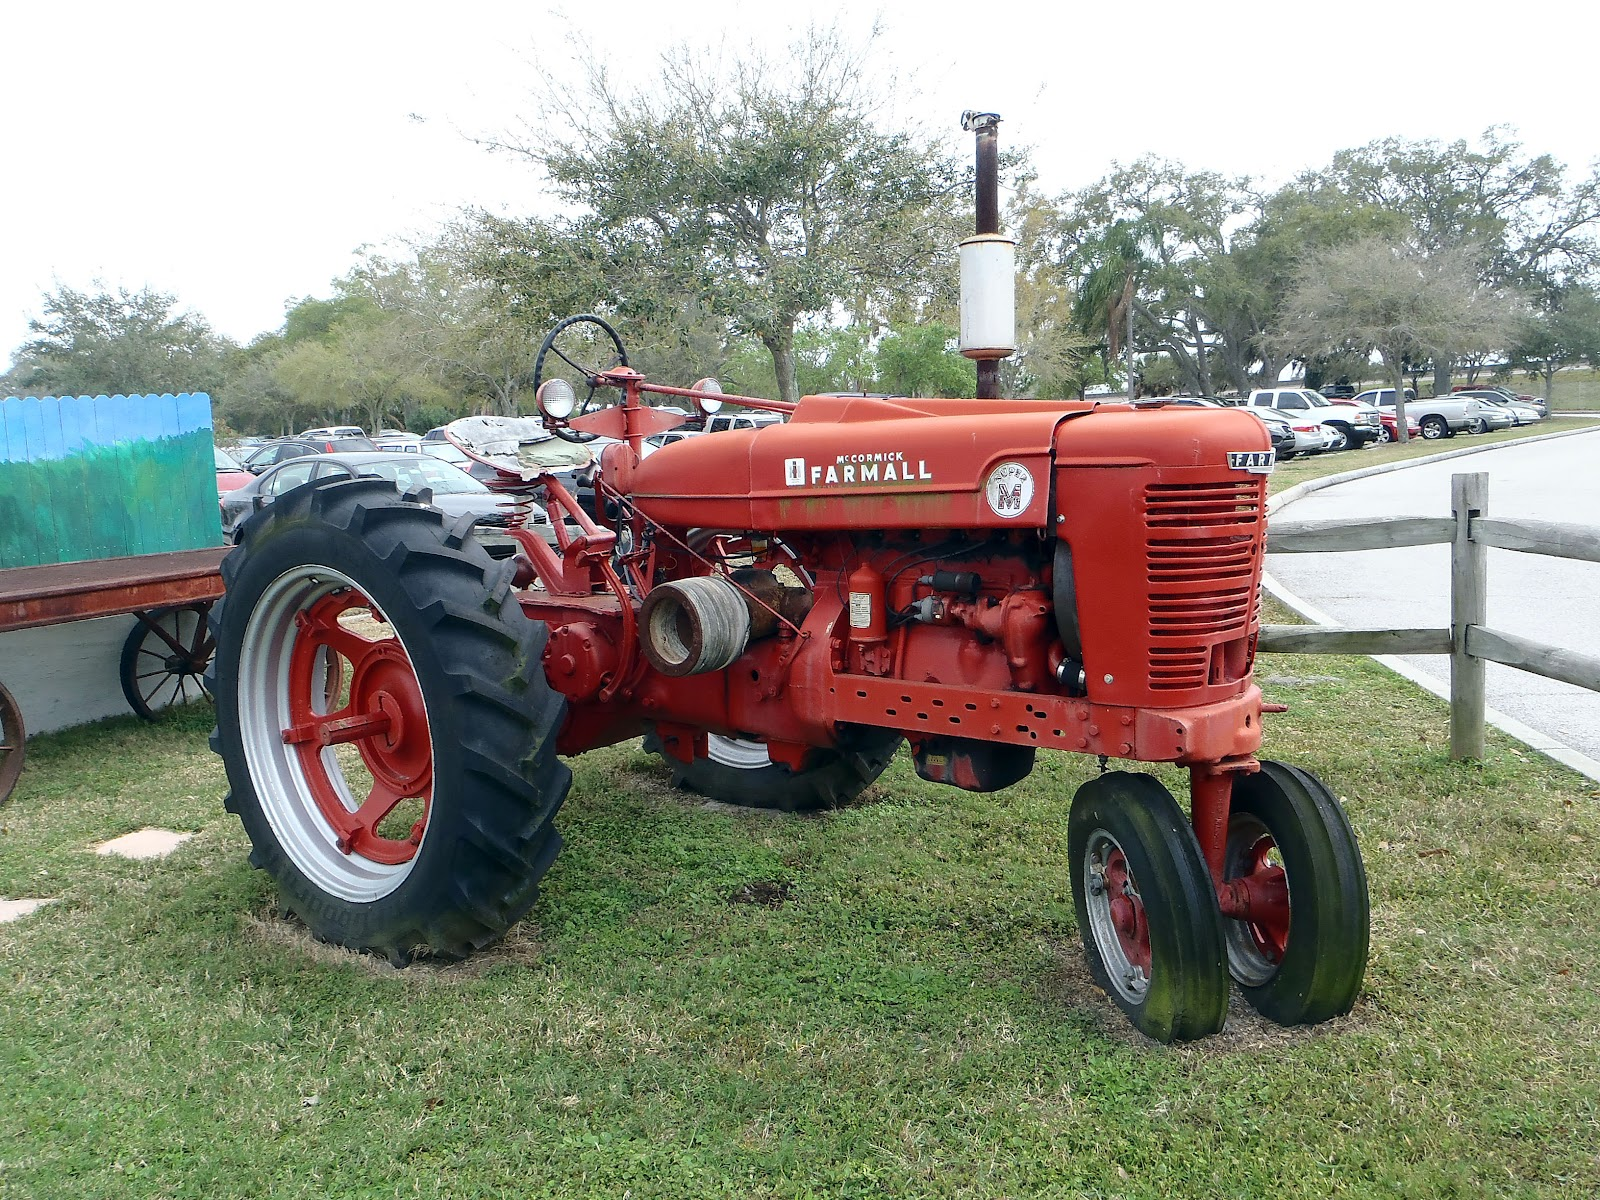 Farm All Tractor : Farmall tractor models